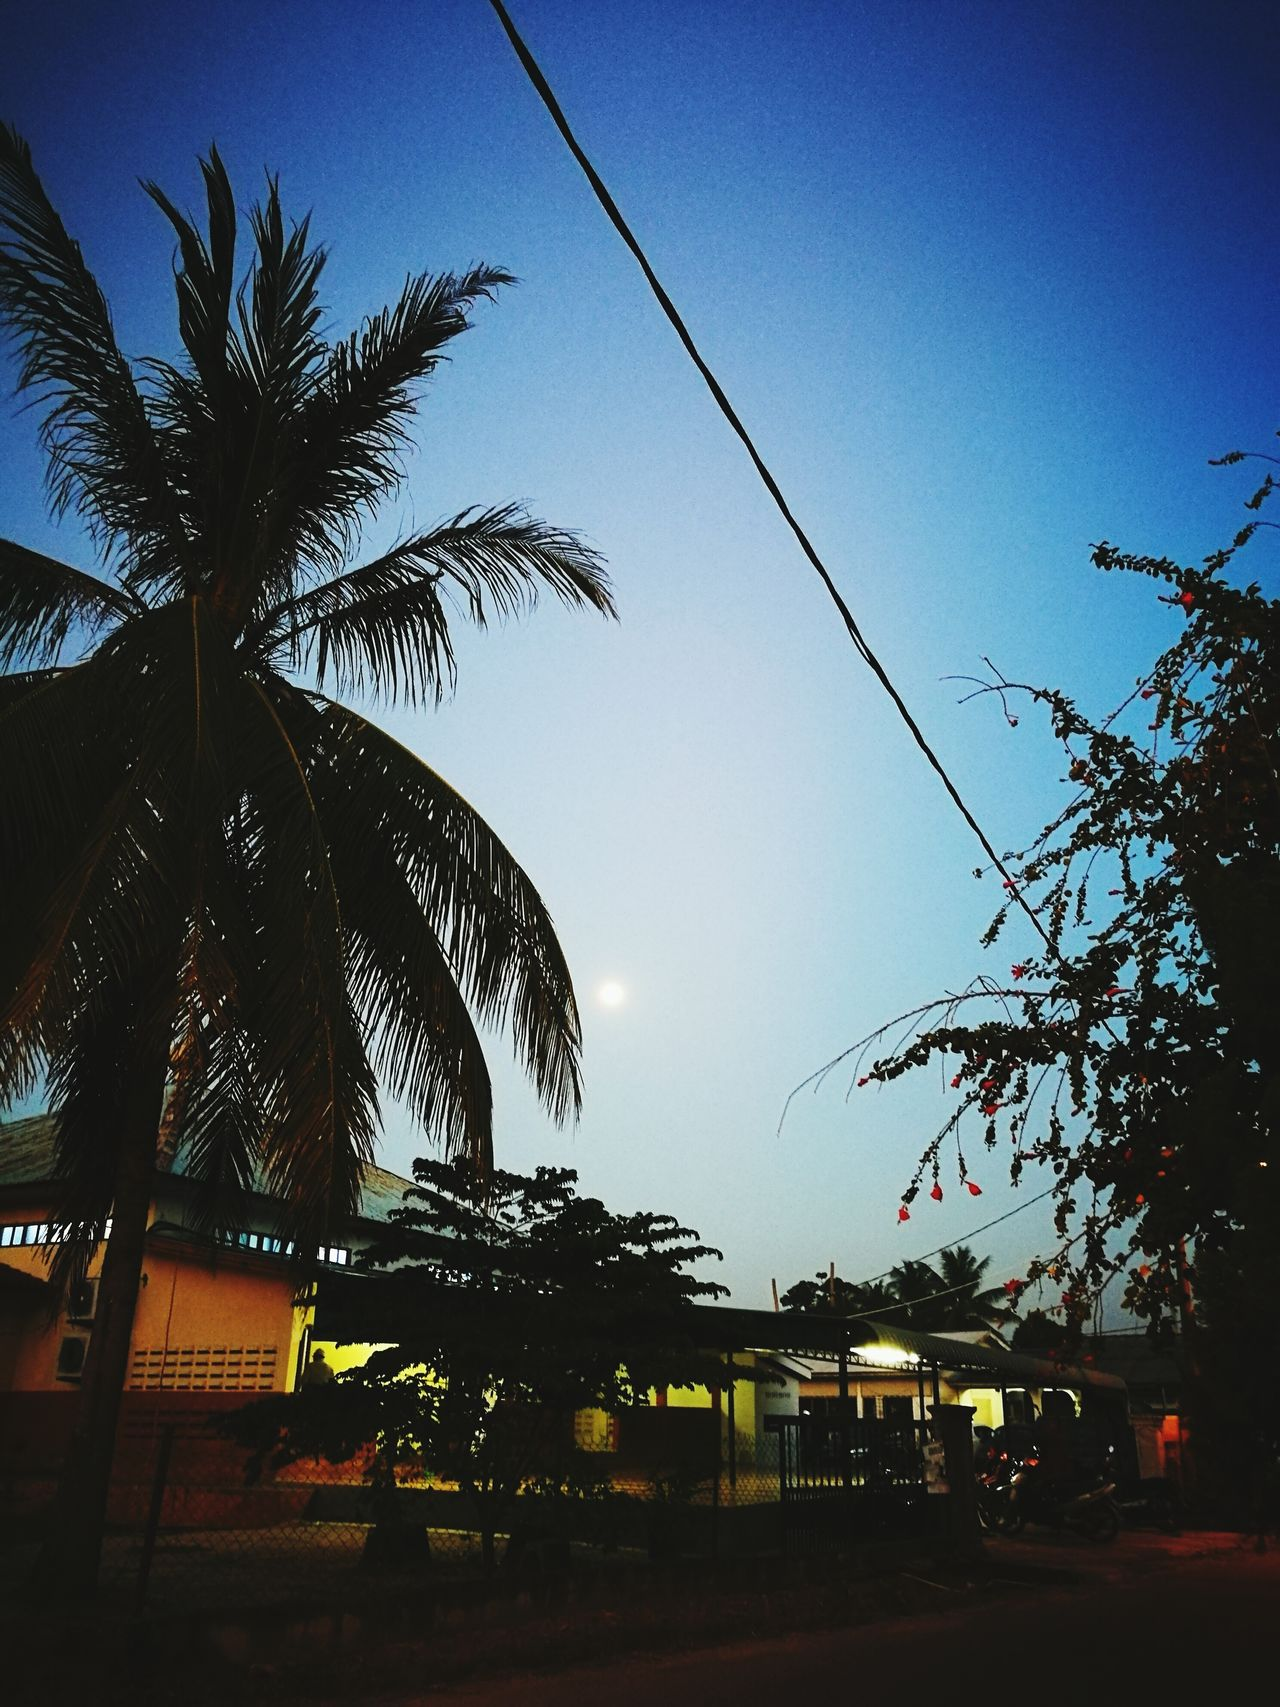 Nature Sky Tree Day Outdoors Branch Beauty In Nature No People Low Angle View Backgrounds High Angle View Maghrib MaghribPrayer Maghrib Time Evening Prayer Full Moon 🌕 Full Moon Night  Full Moon Coconut Coconut Tree